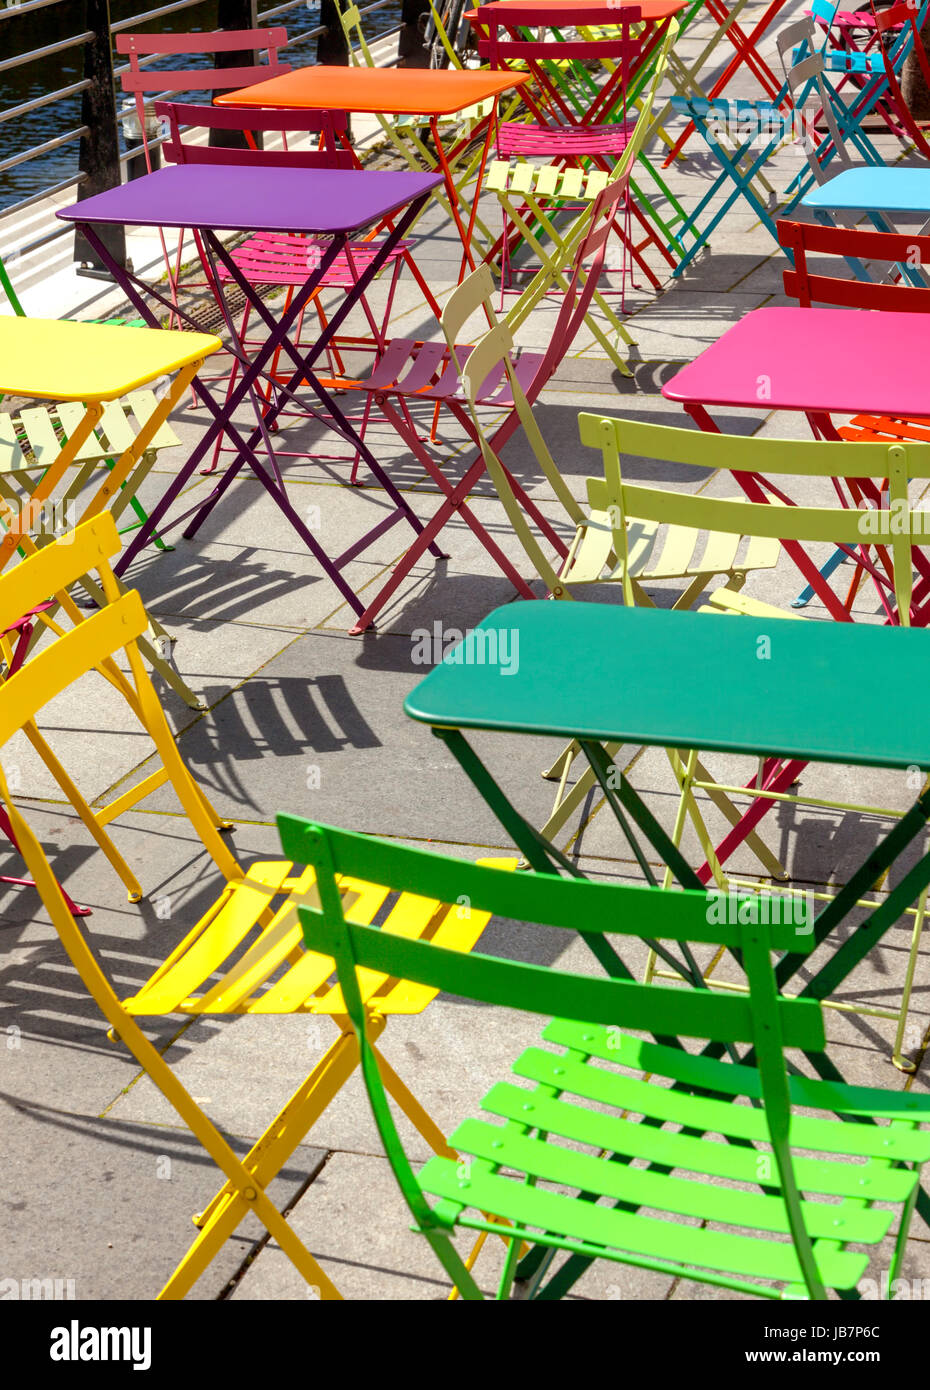 Vibrant colorful chairs and tables at outdoor area of cafe at Aarhus, Denmark - Stock Image